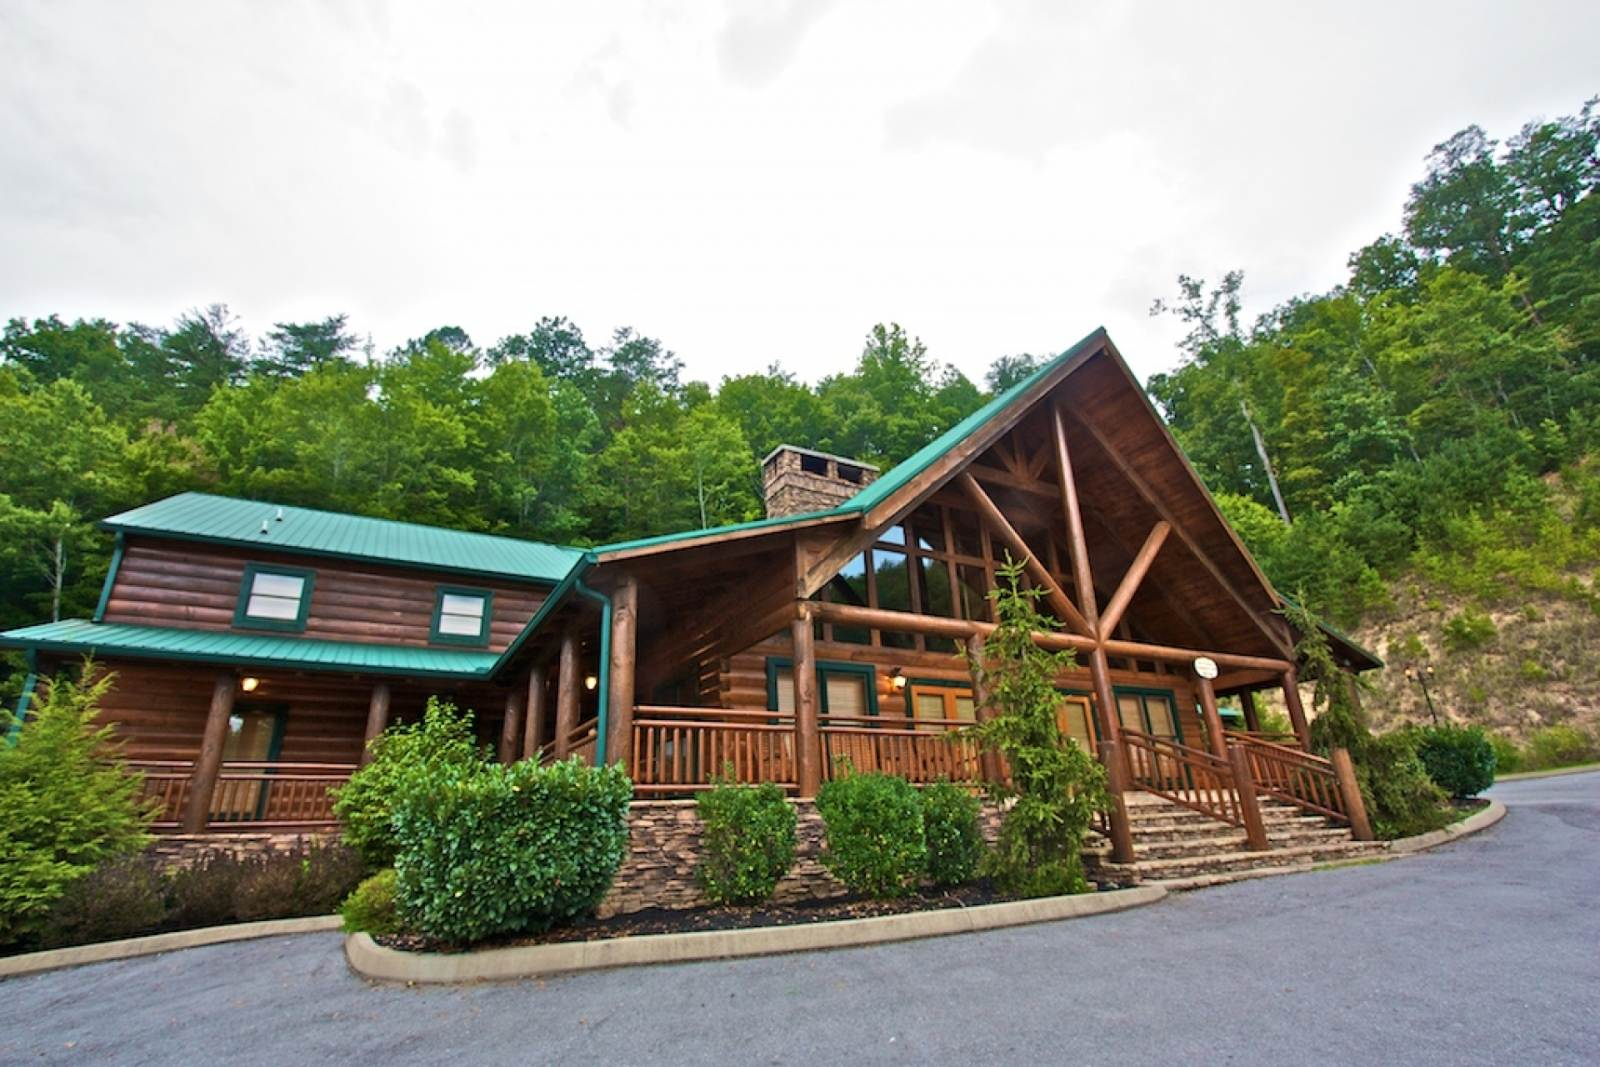 vacation rentals tn cabins tennessee mountain log around nashville heven rental near camping in